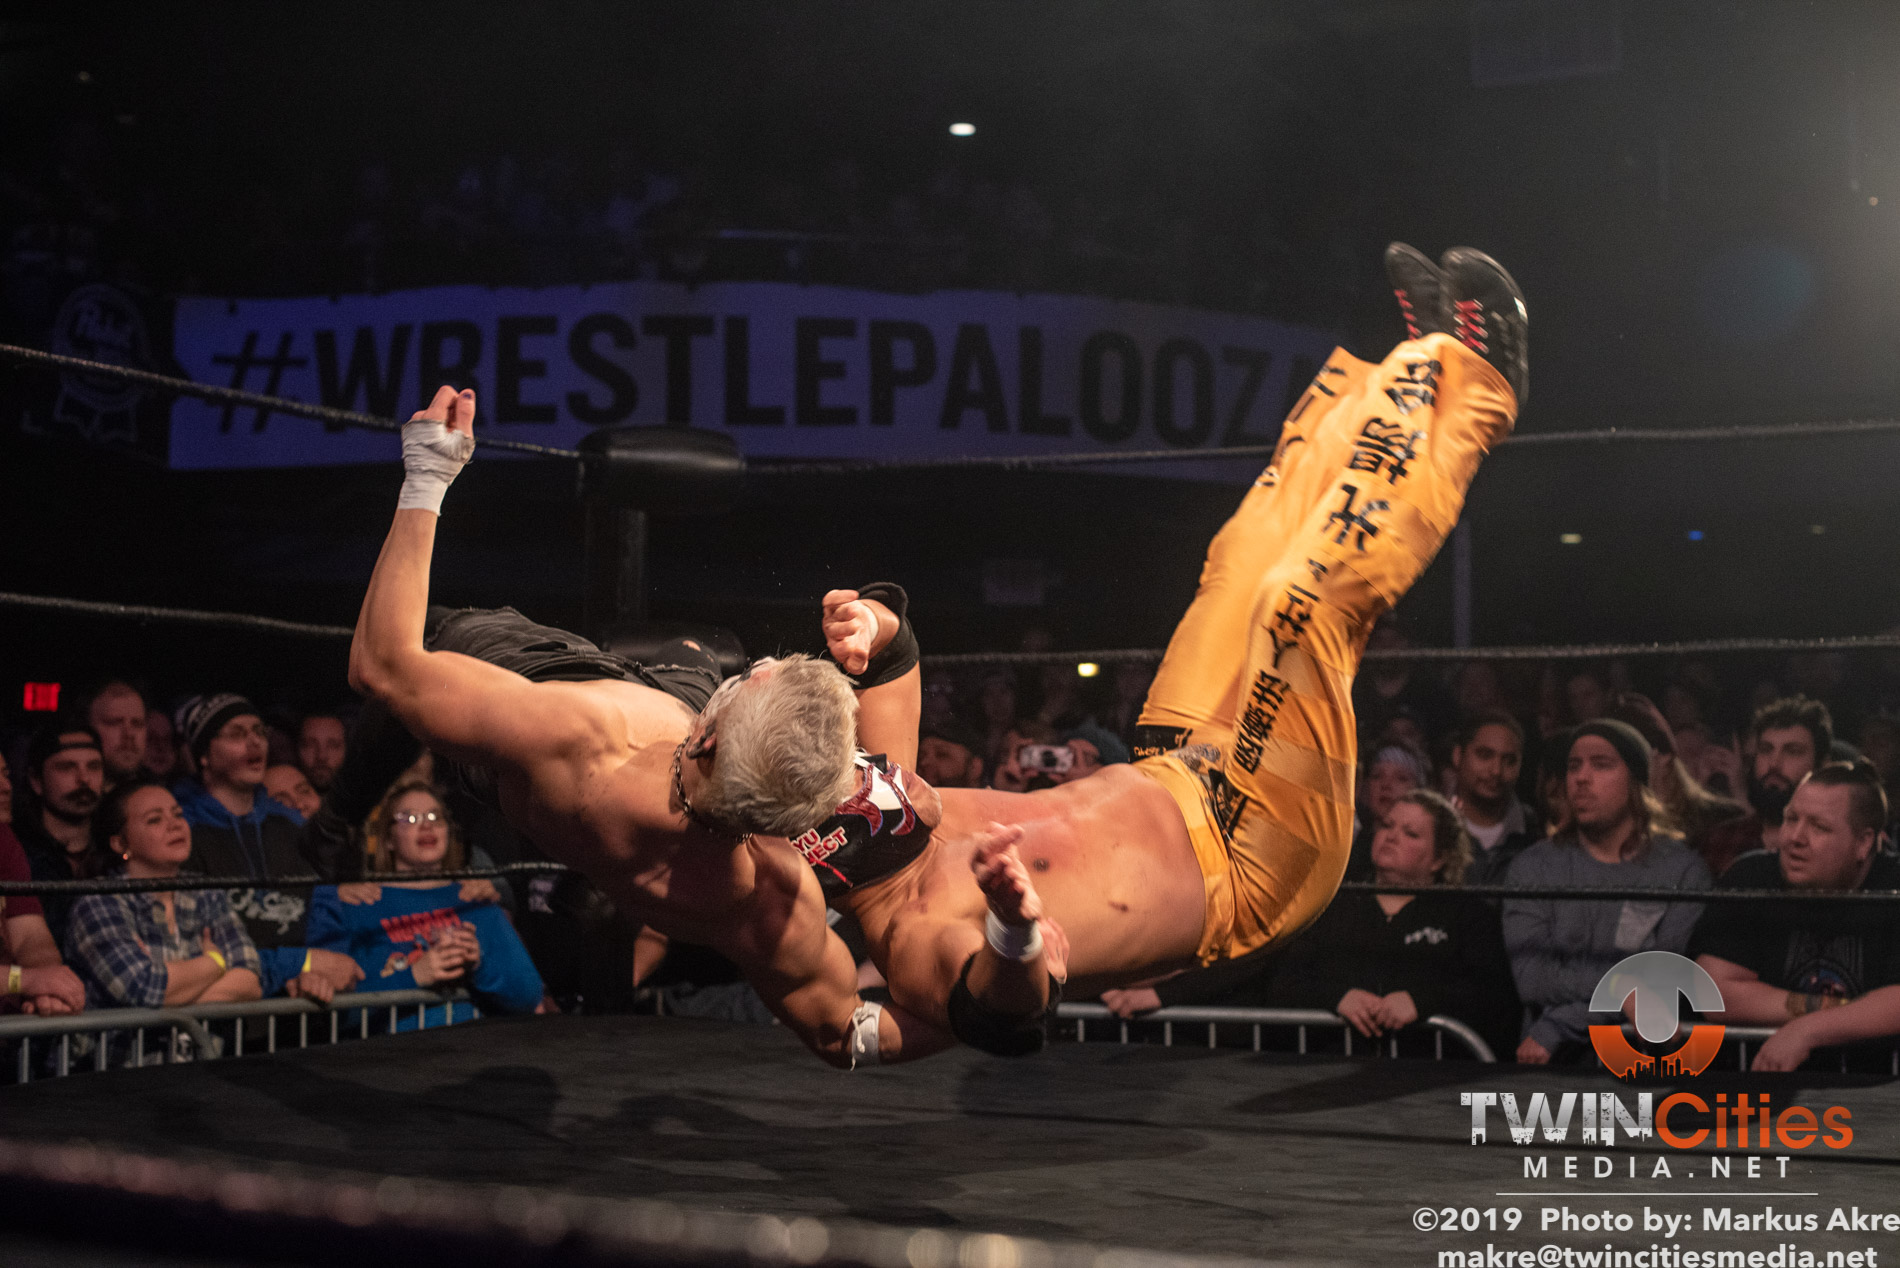 Wrestlepalooza - Match 5-9